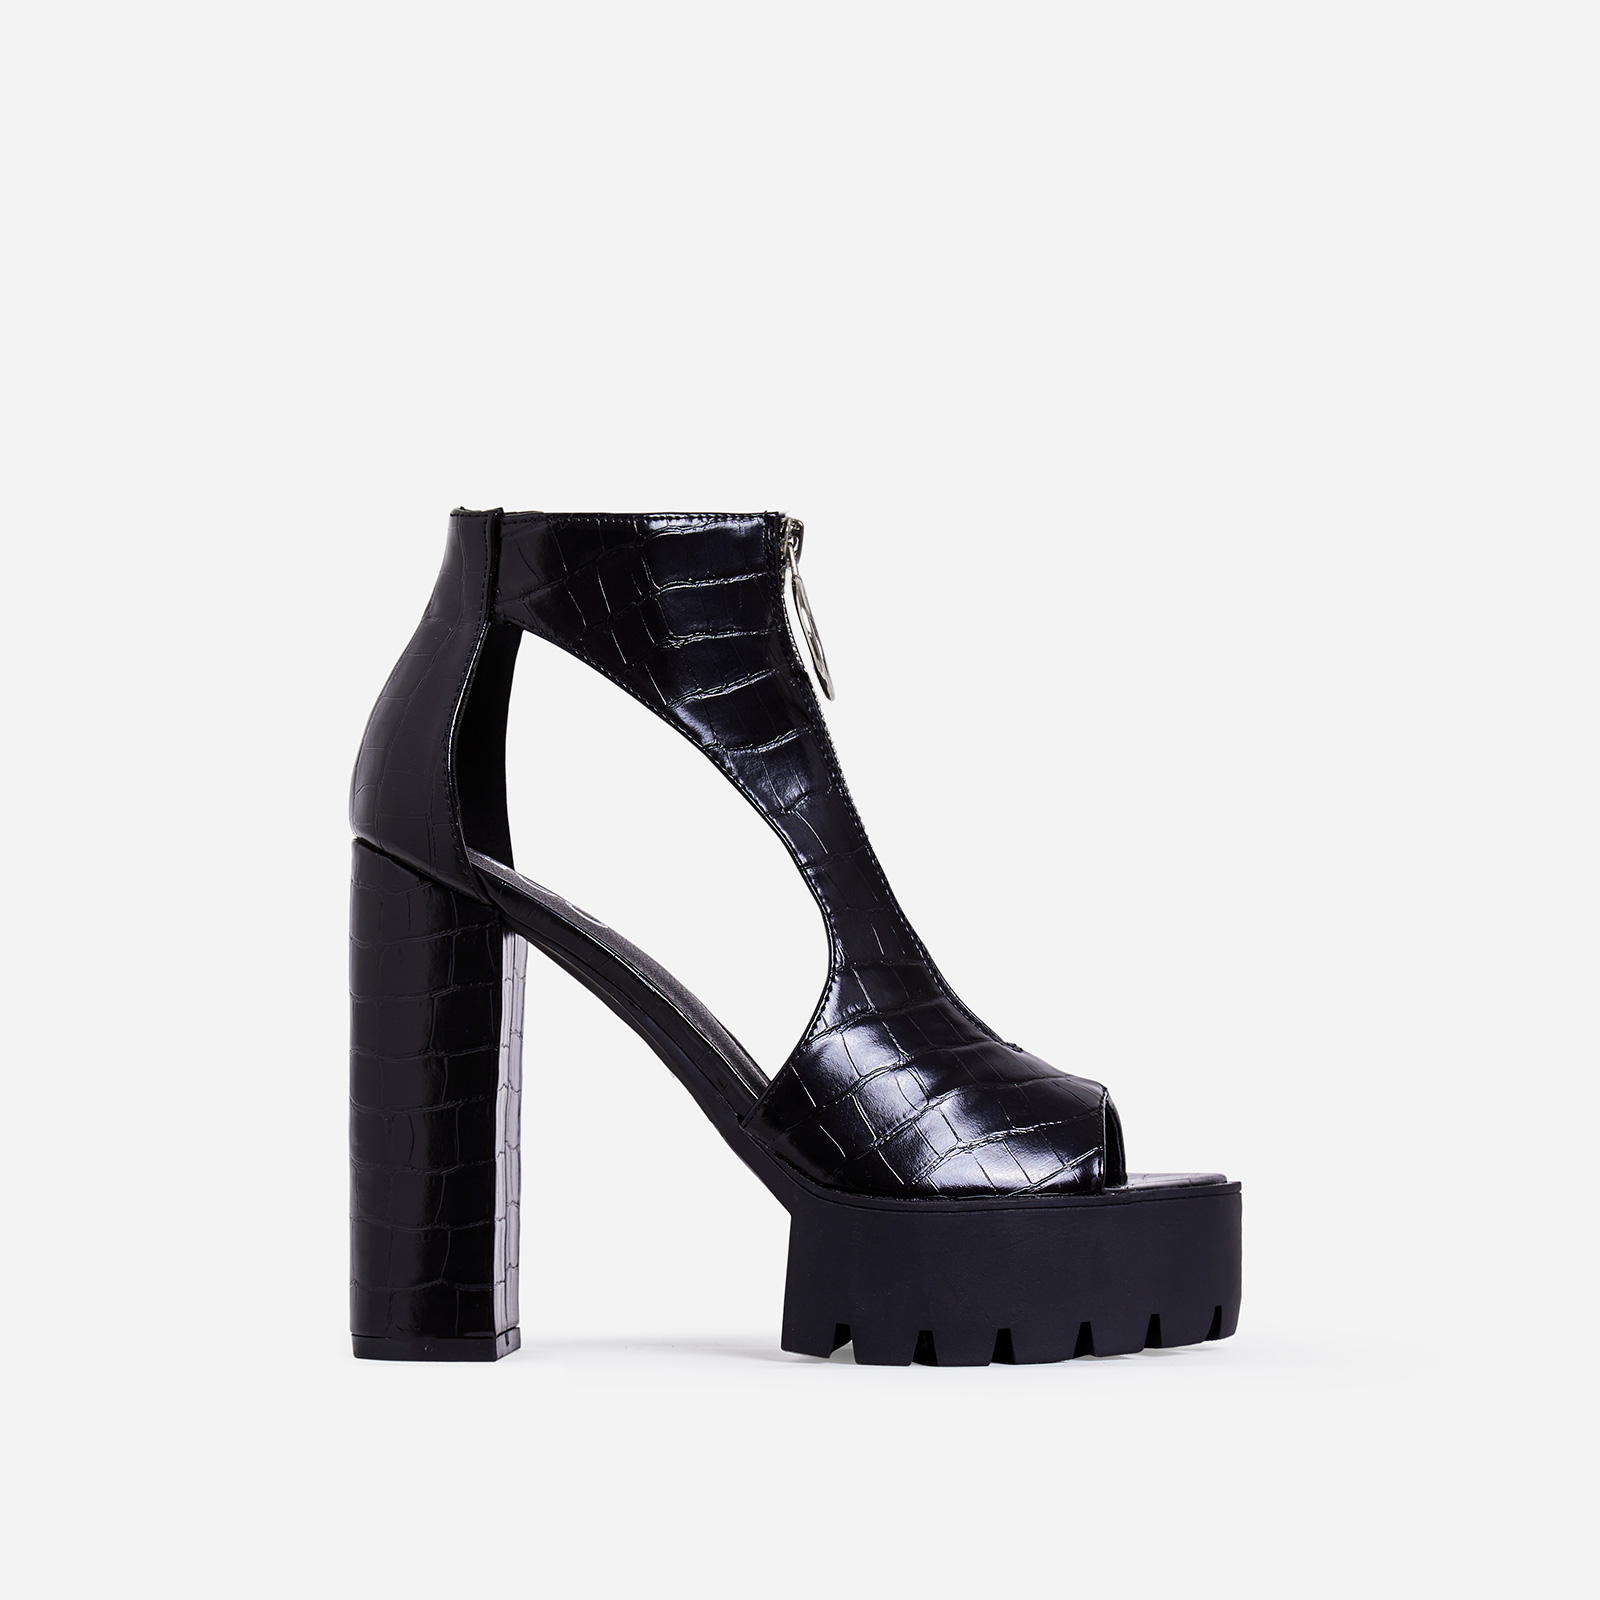 Bella Platform Cut Out Peep Toe Ankle Boot In Black Croc Print Faux Leather